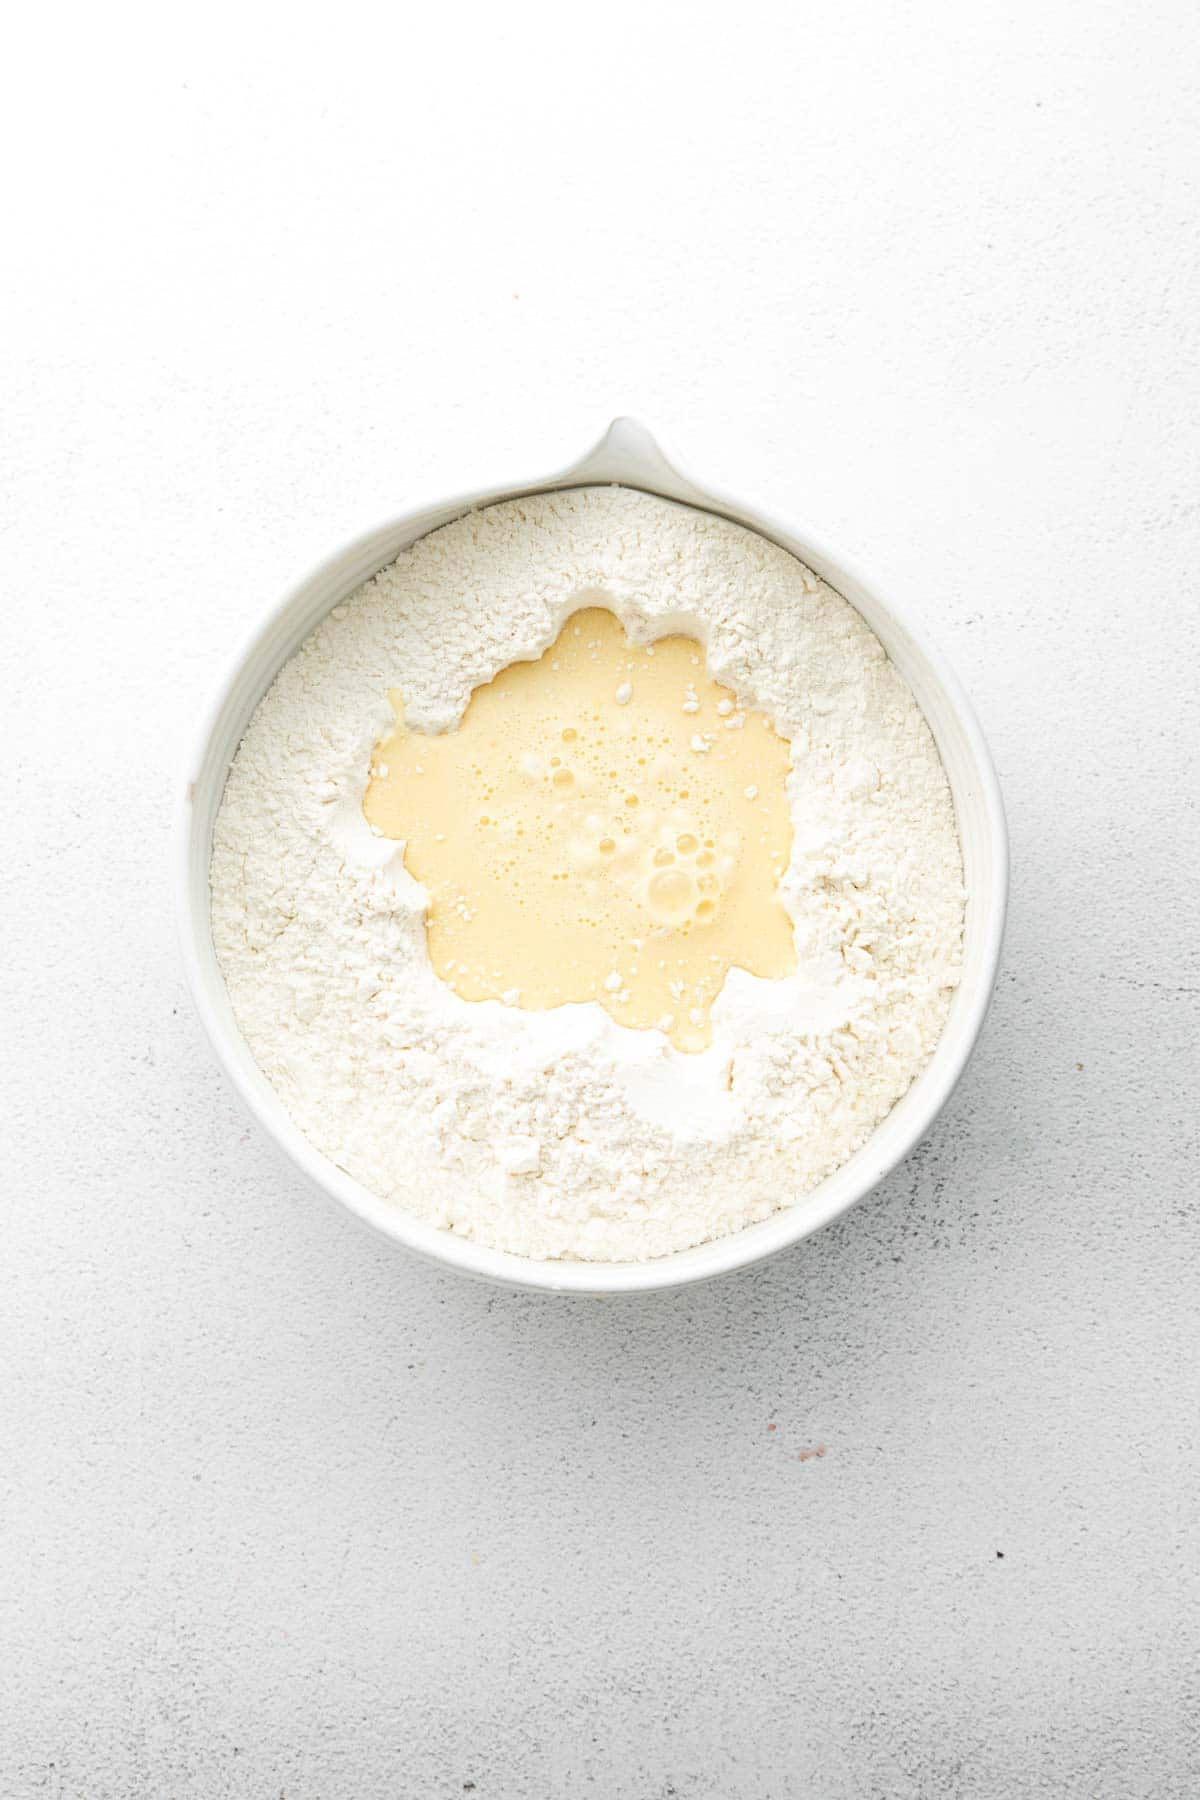 mixing bowl with flour and butter mixture